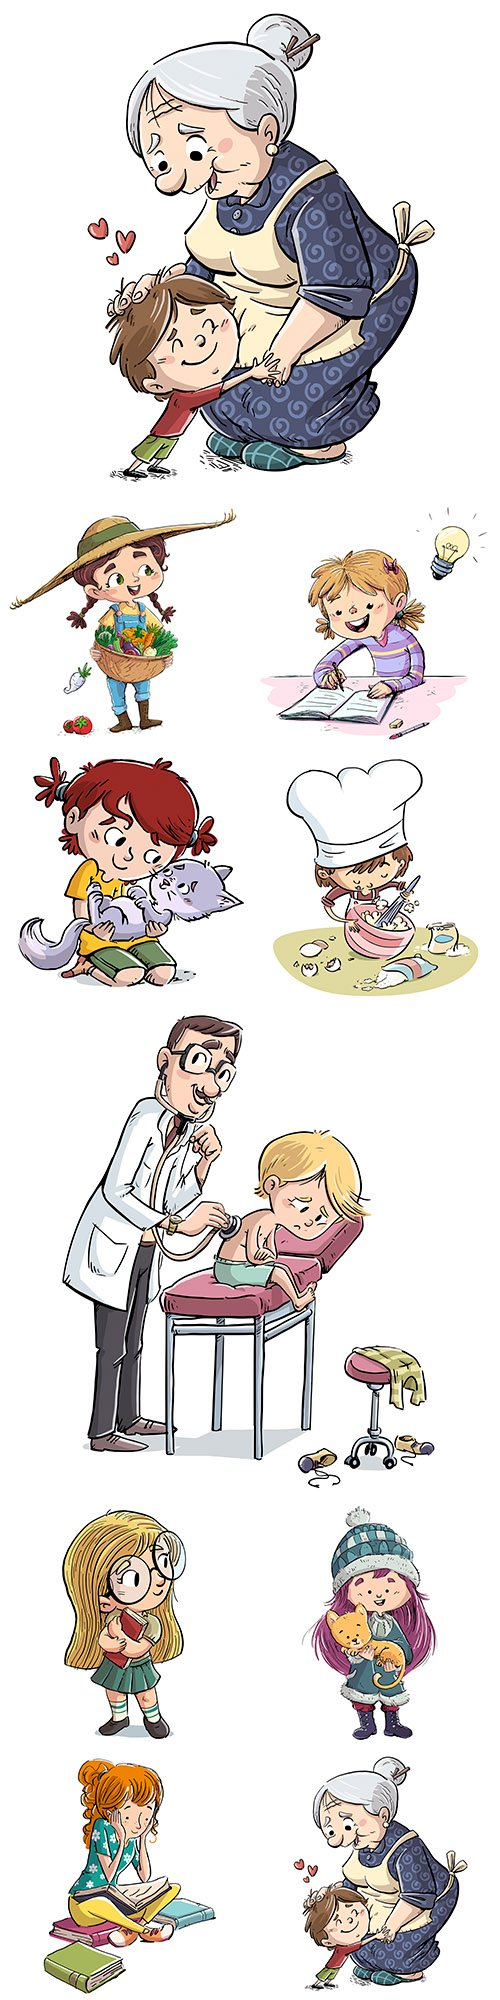 Young children and lifestyle objects vector illustrations